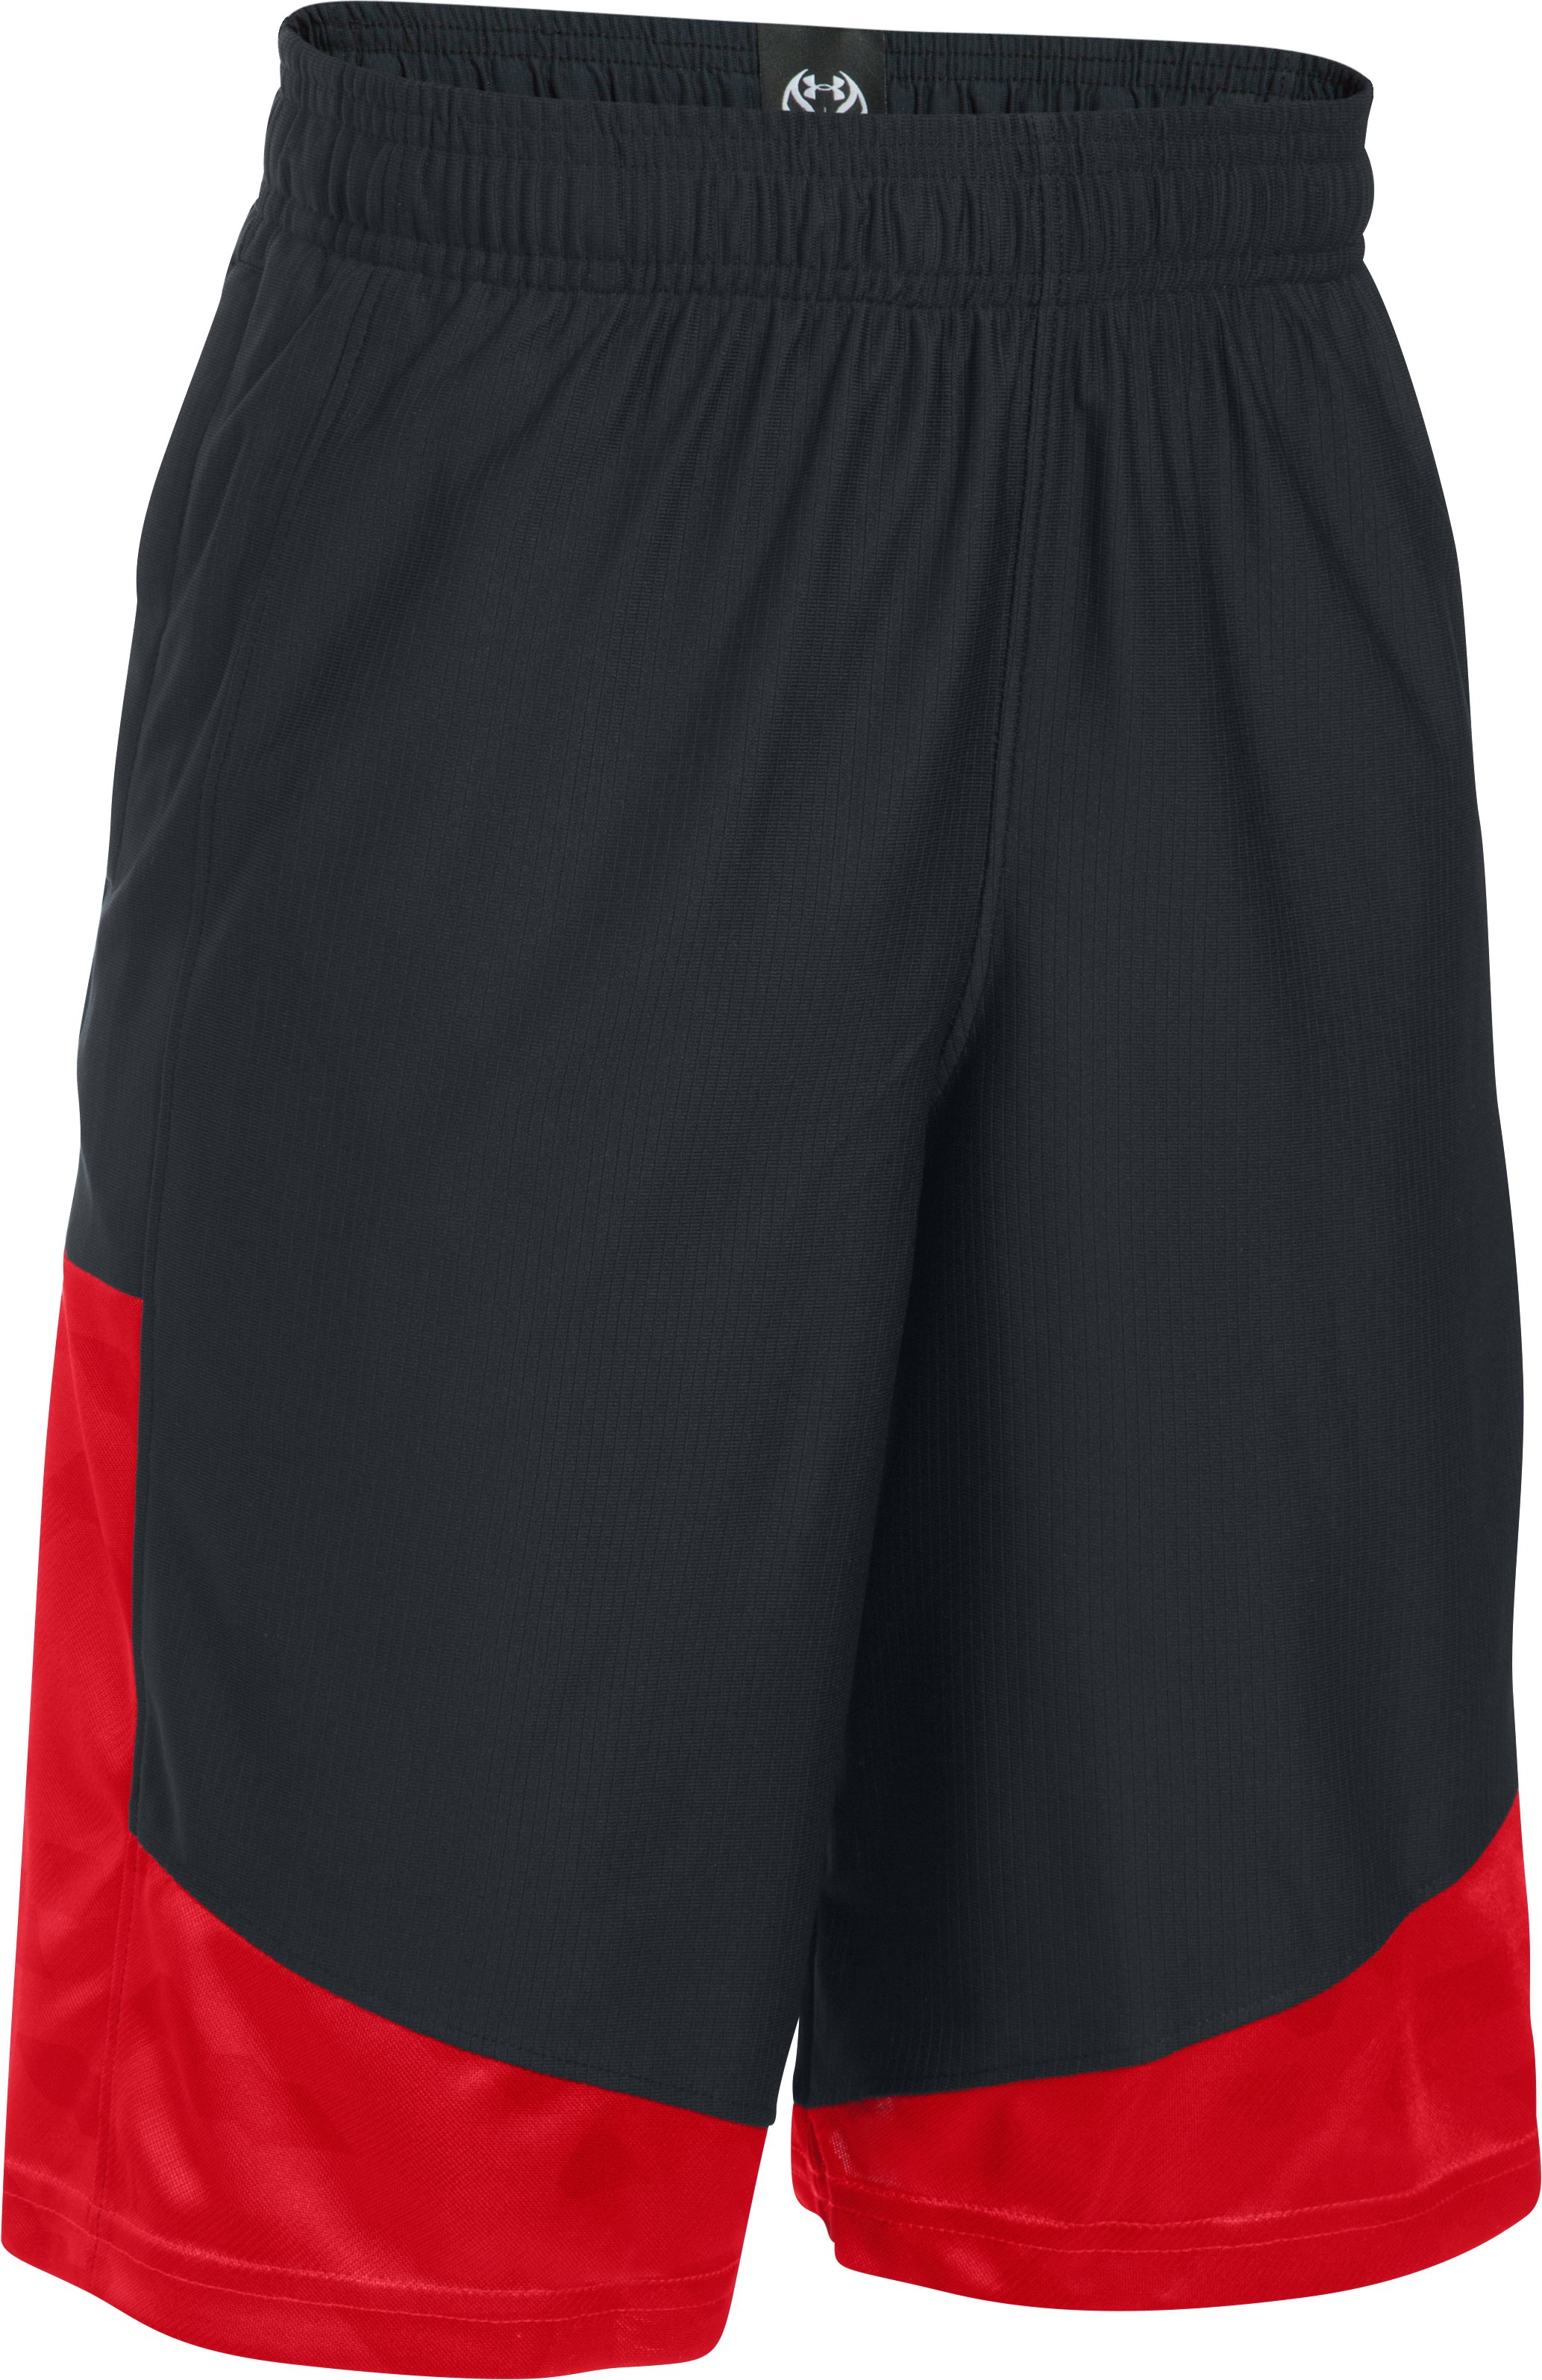 Boys' SC30 Performance Shorts, Black , undefined